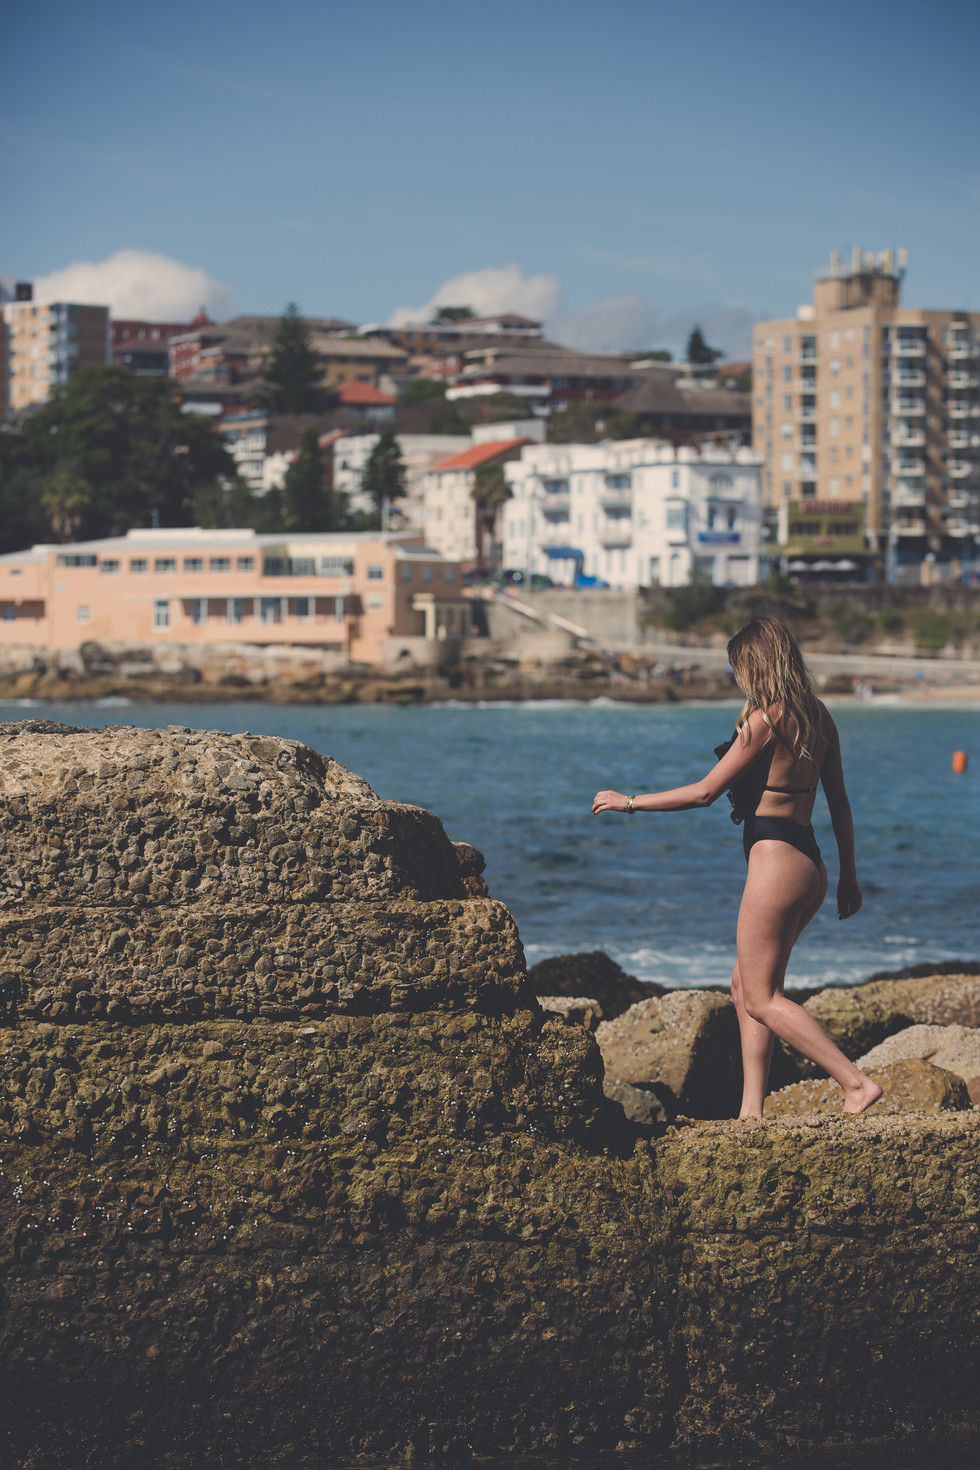 Kristy__by_CoogeePhotography-222998.jpg